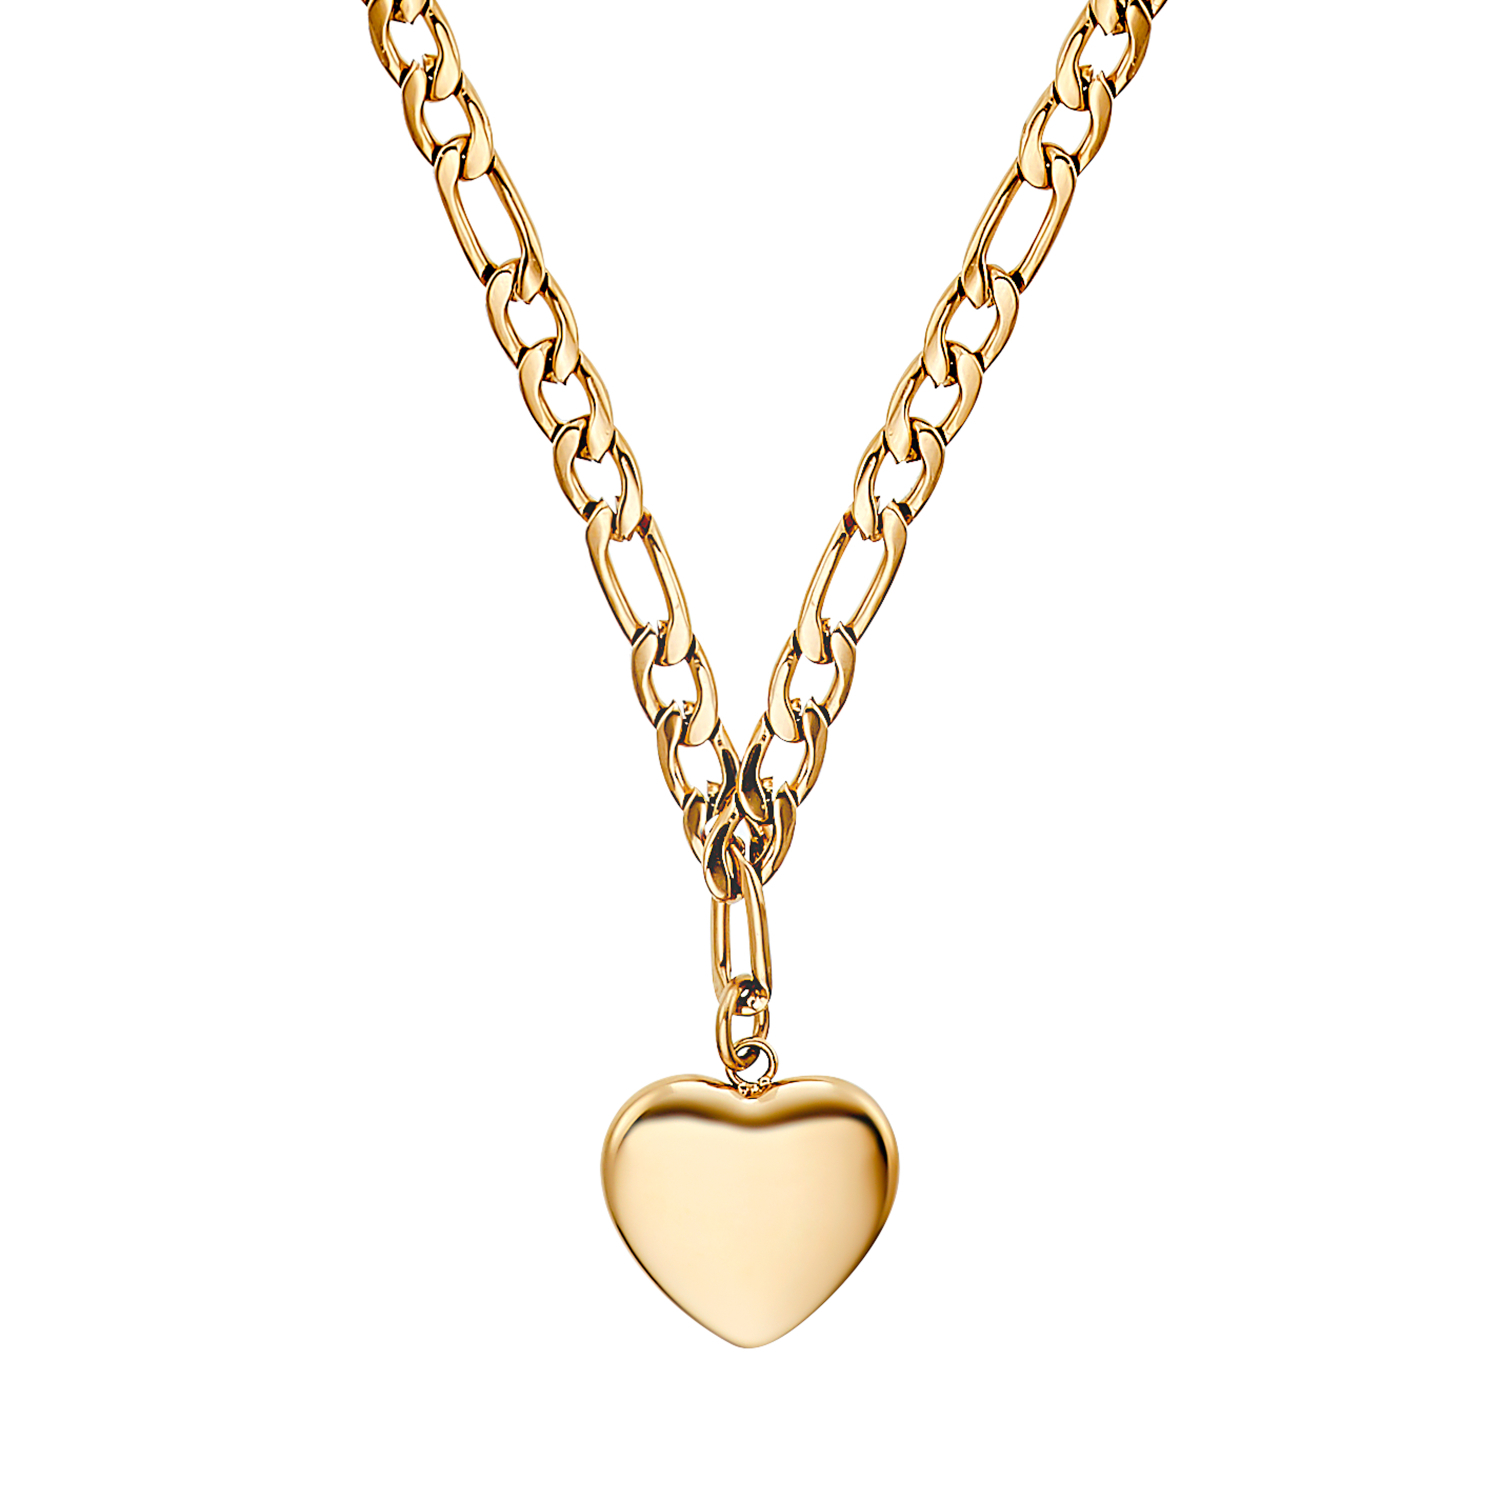 CHUNKY HEART KETTE MIT ANHÄNGER GOLD